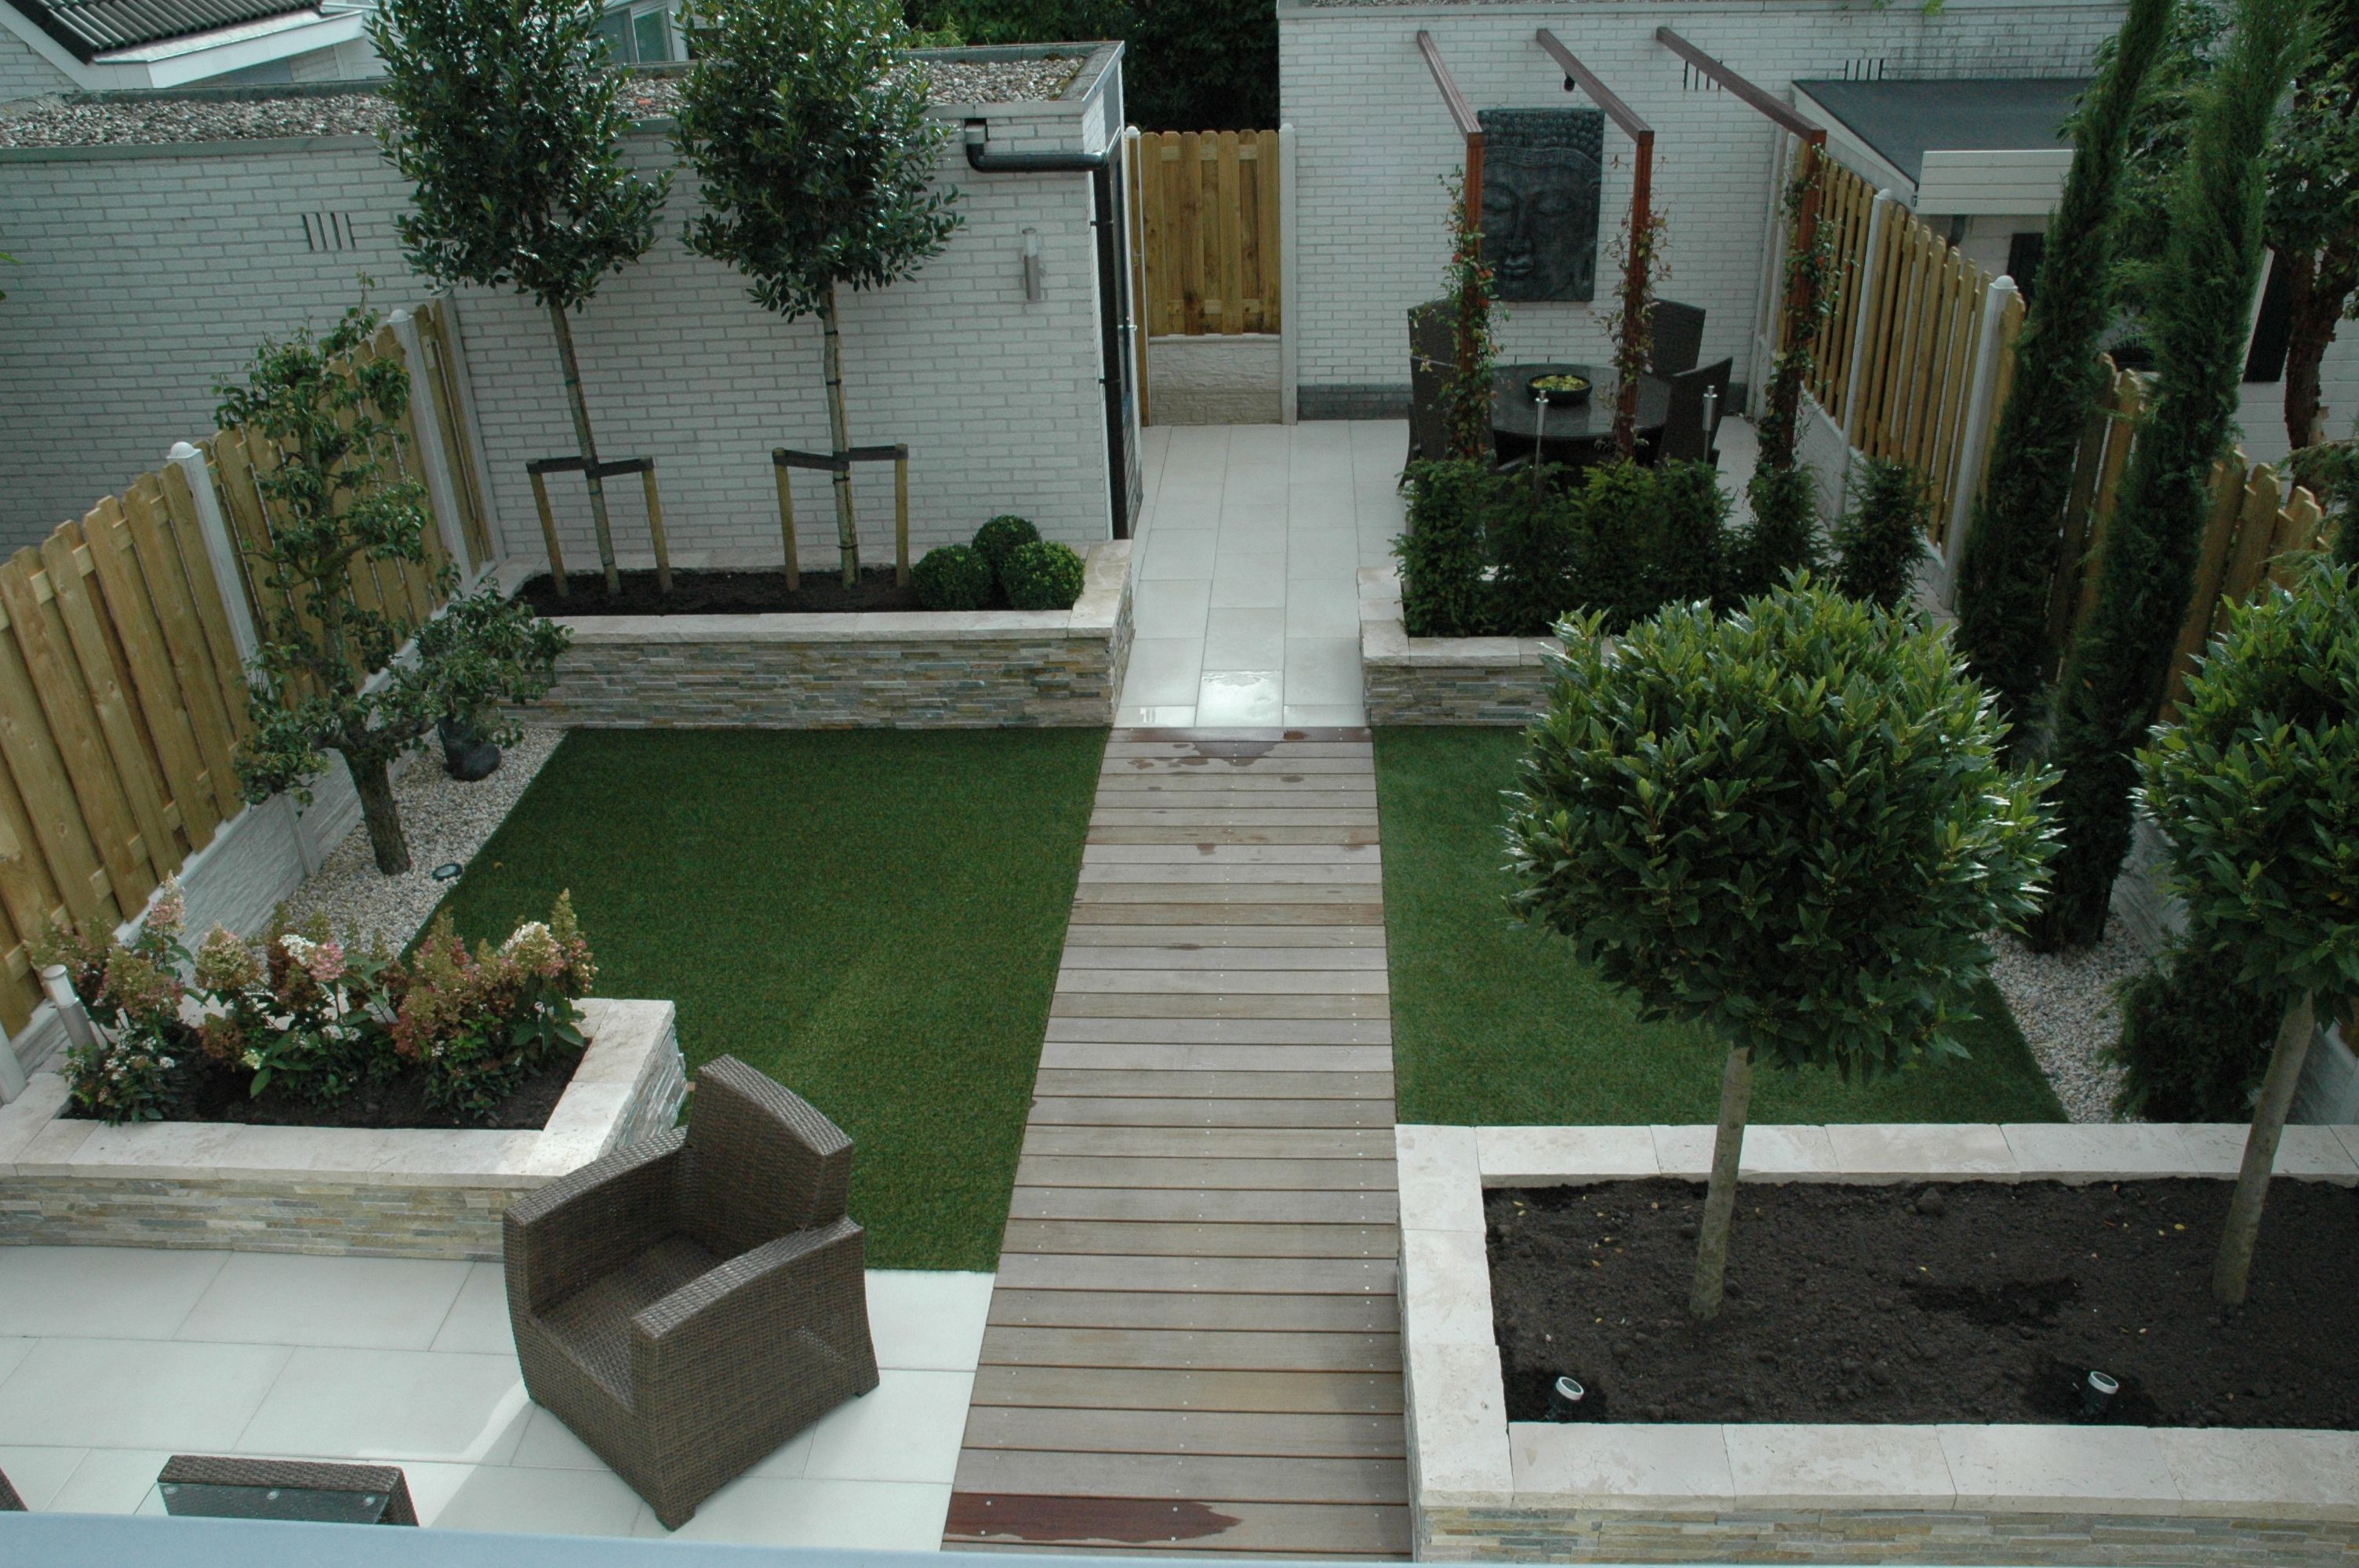 Garden Design With Artificial Grass get effortless lush, neatly cropped grass all year round with